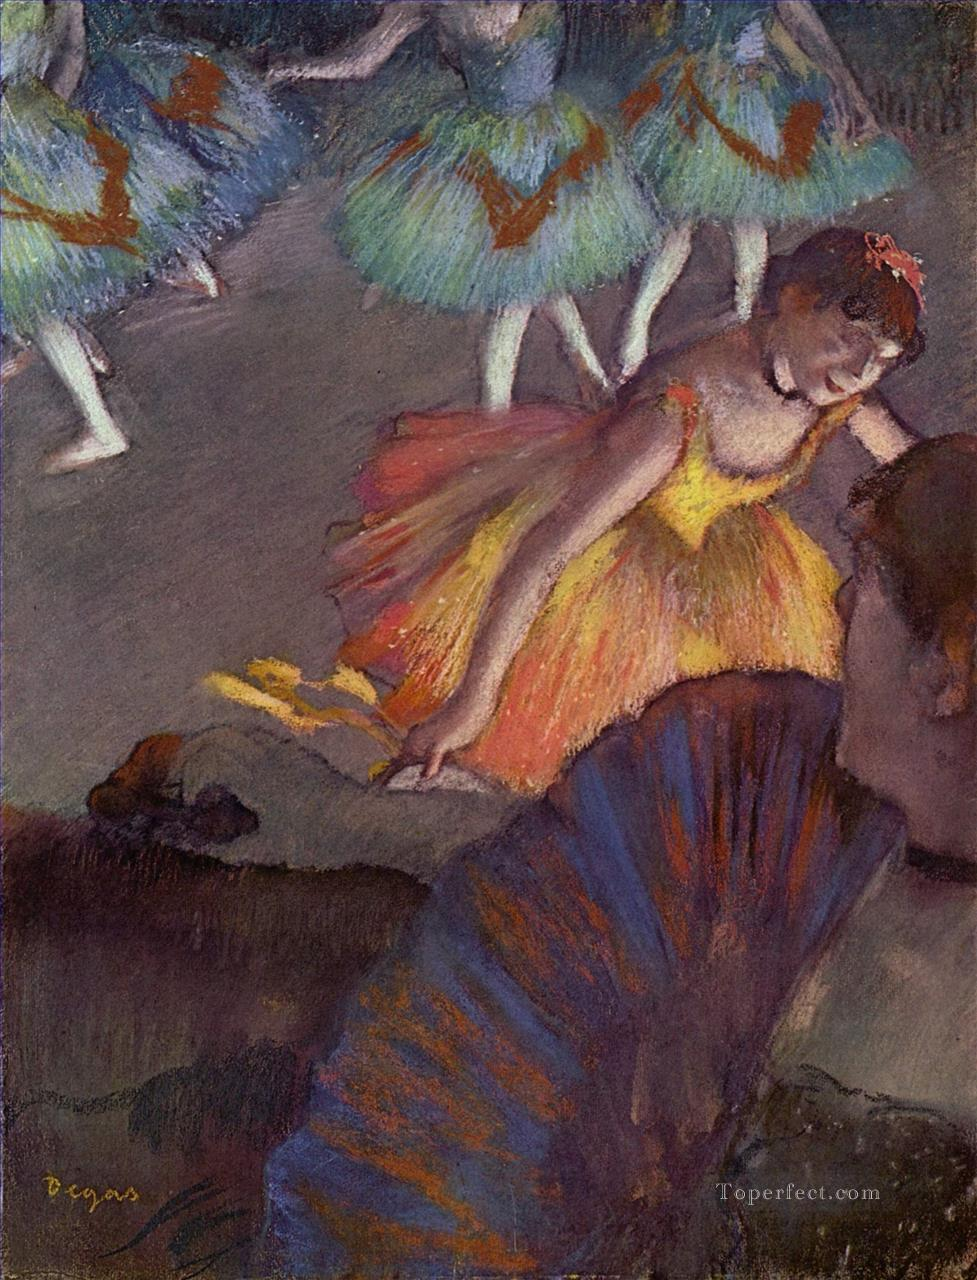 5 Ballerina and Lady with a Fan Impressionism ballet dancer Edgar Degas